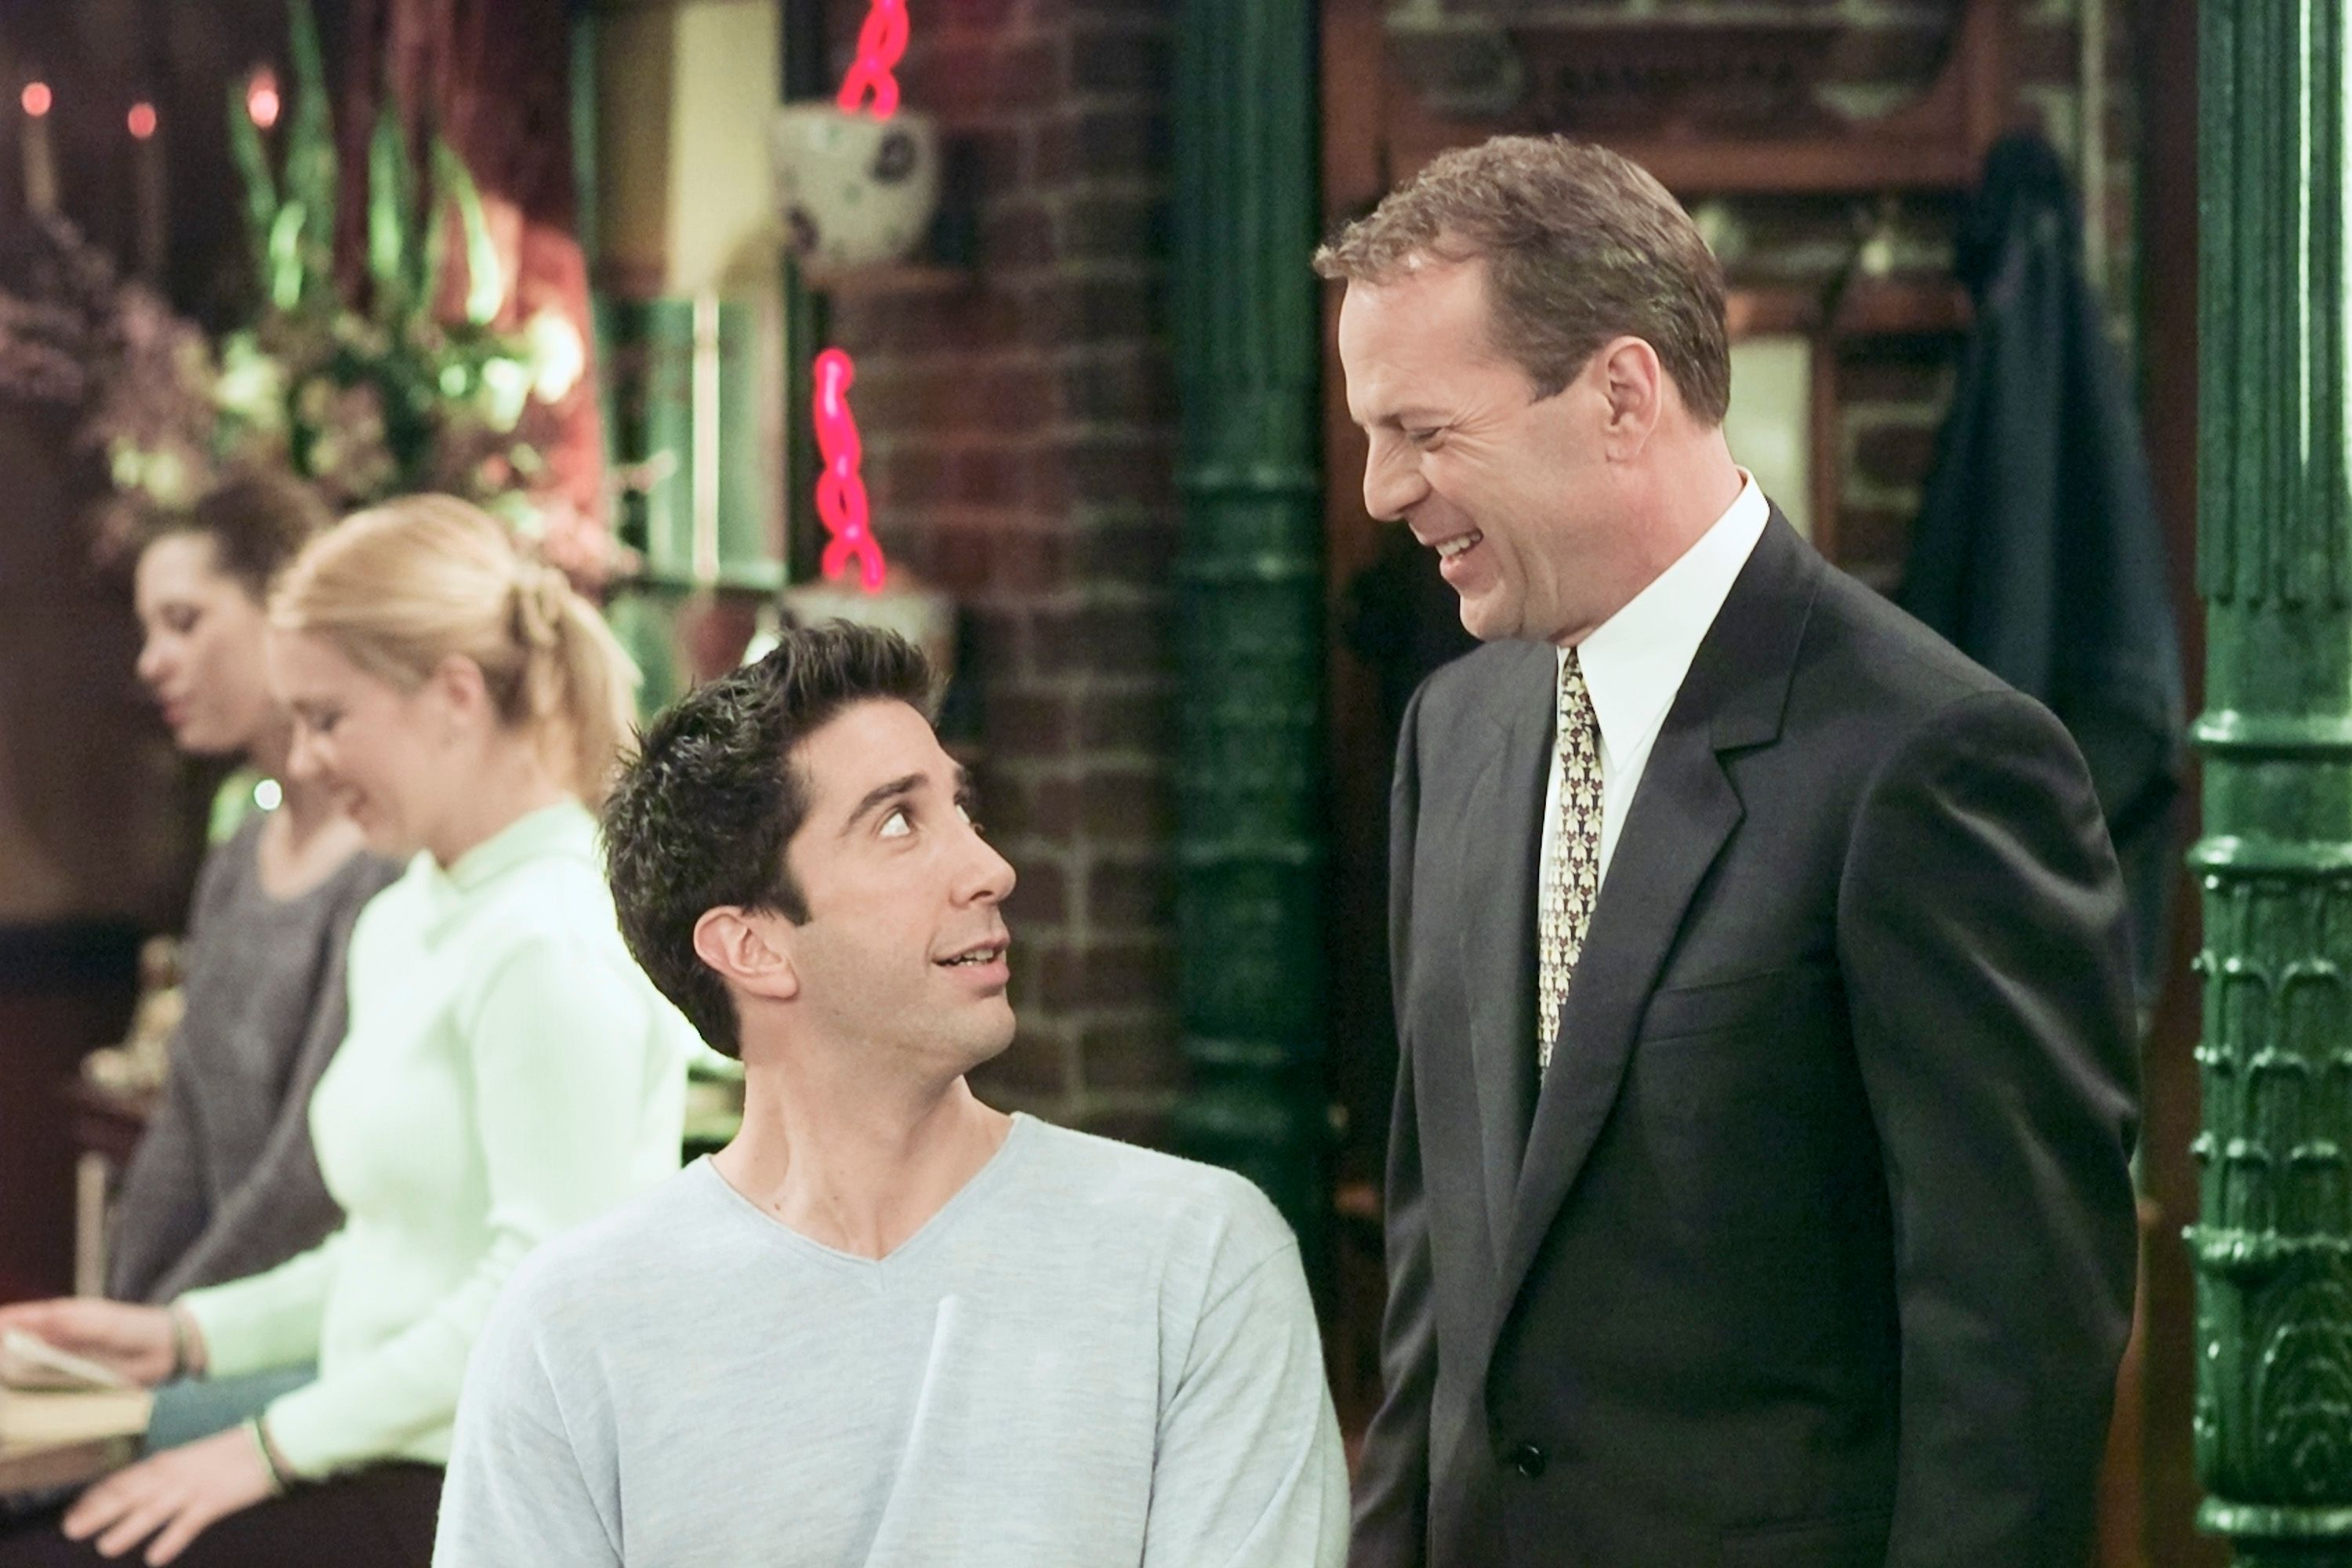 """David Schwimmer as Ross Geller, and Bruce Willis as Paul Stevens in a 2000 episode of """"Friends"""" 